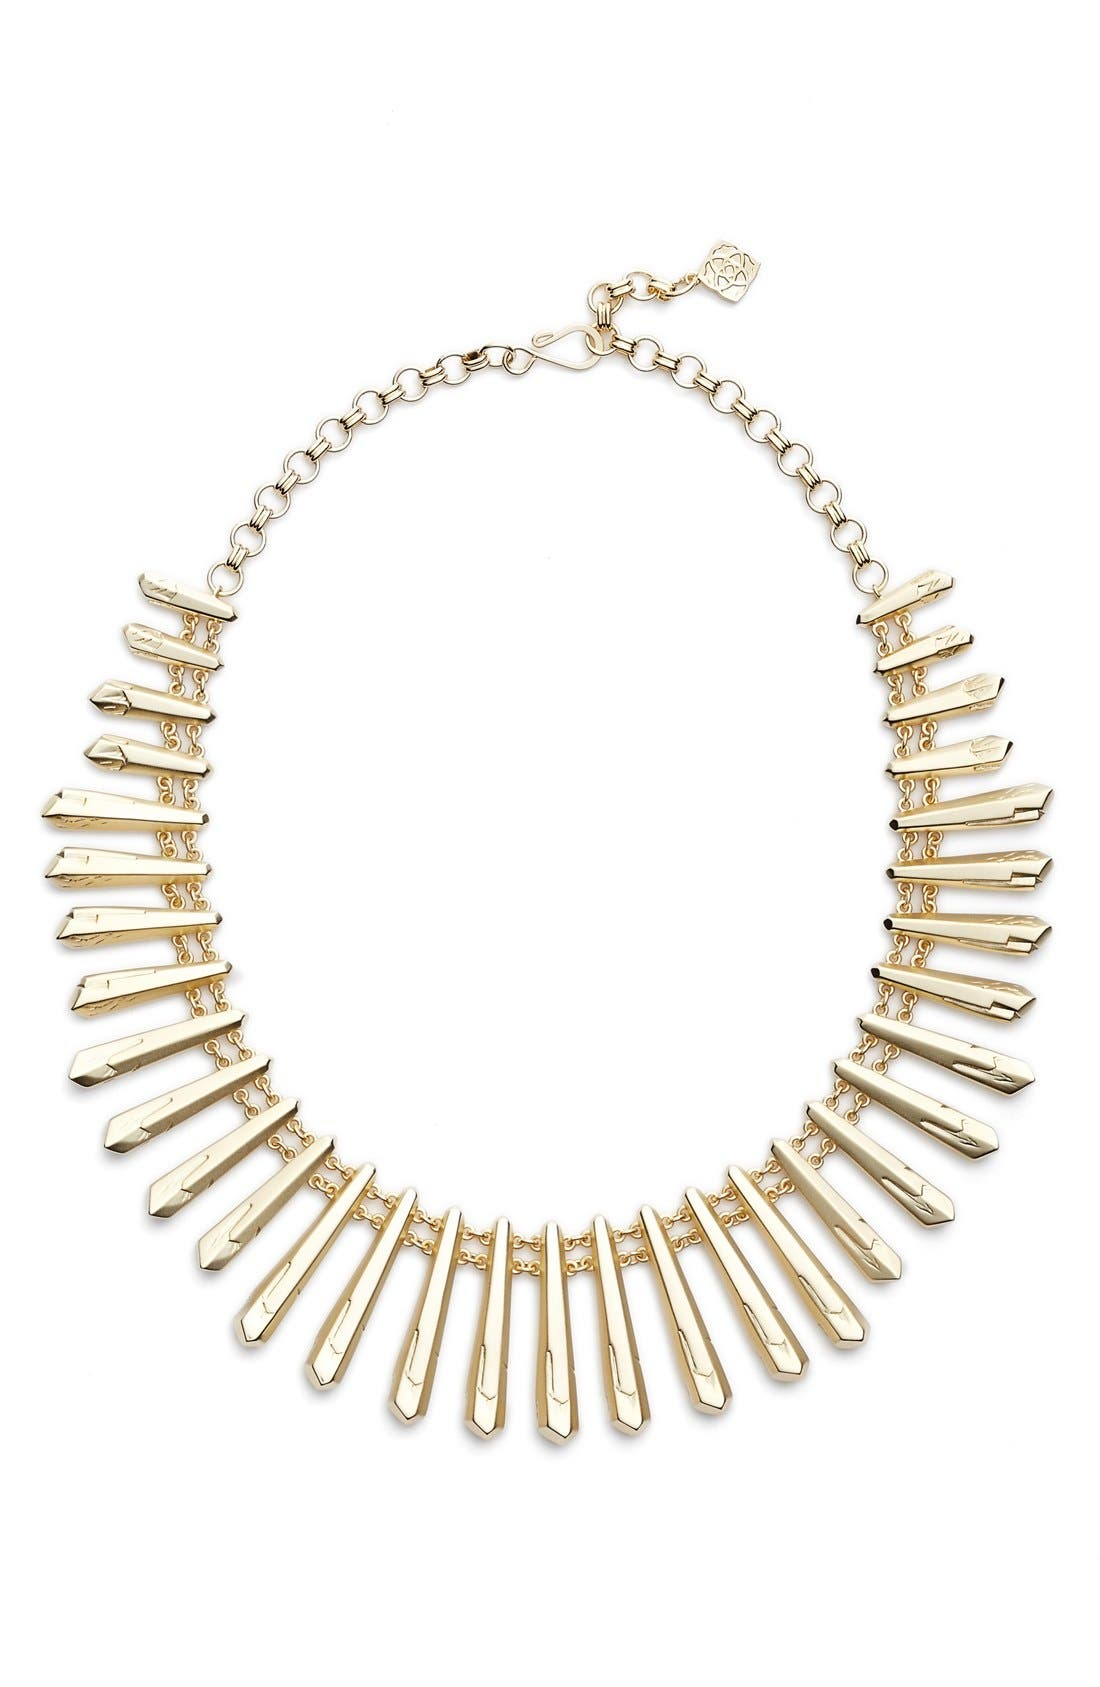 Alternate Image 1 Selected - Kendra Scott 'Jill' Collar Necklace